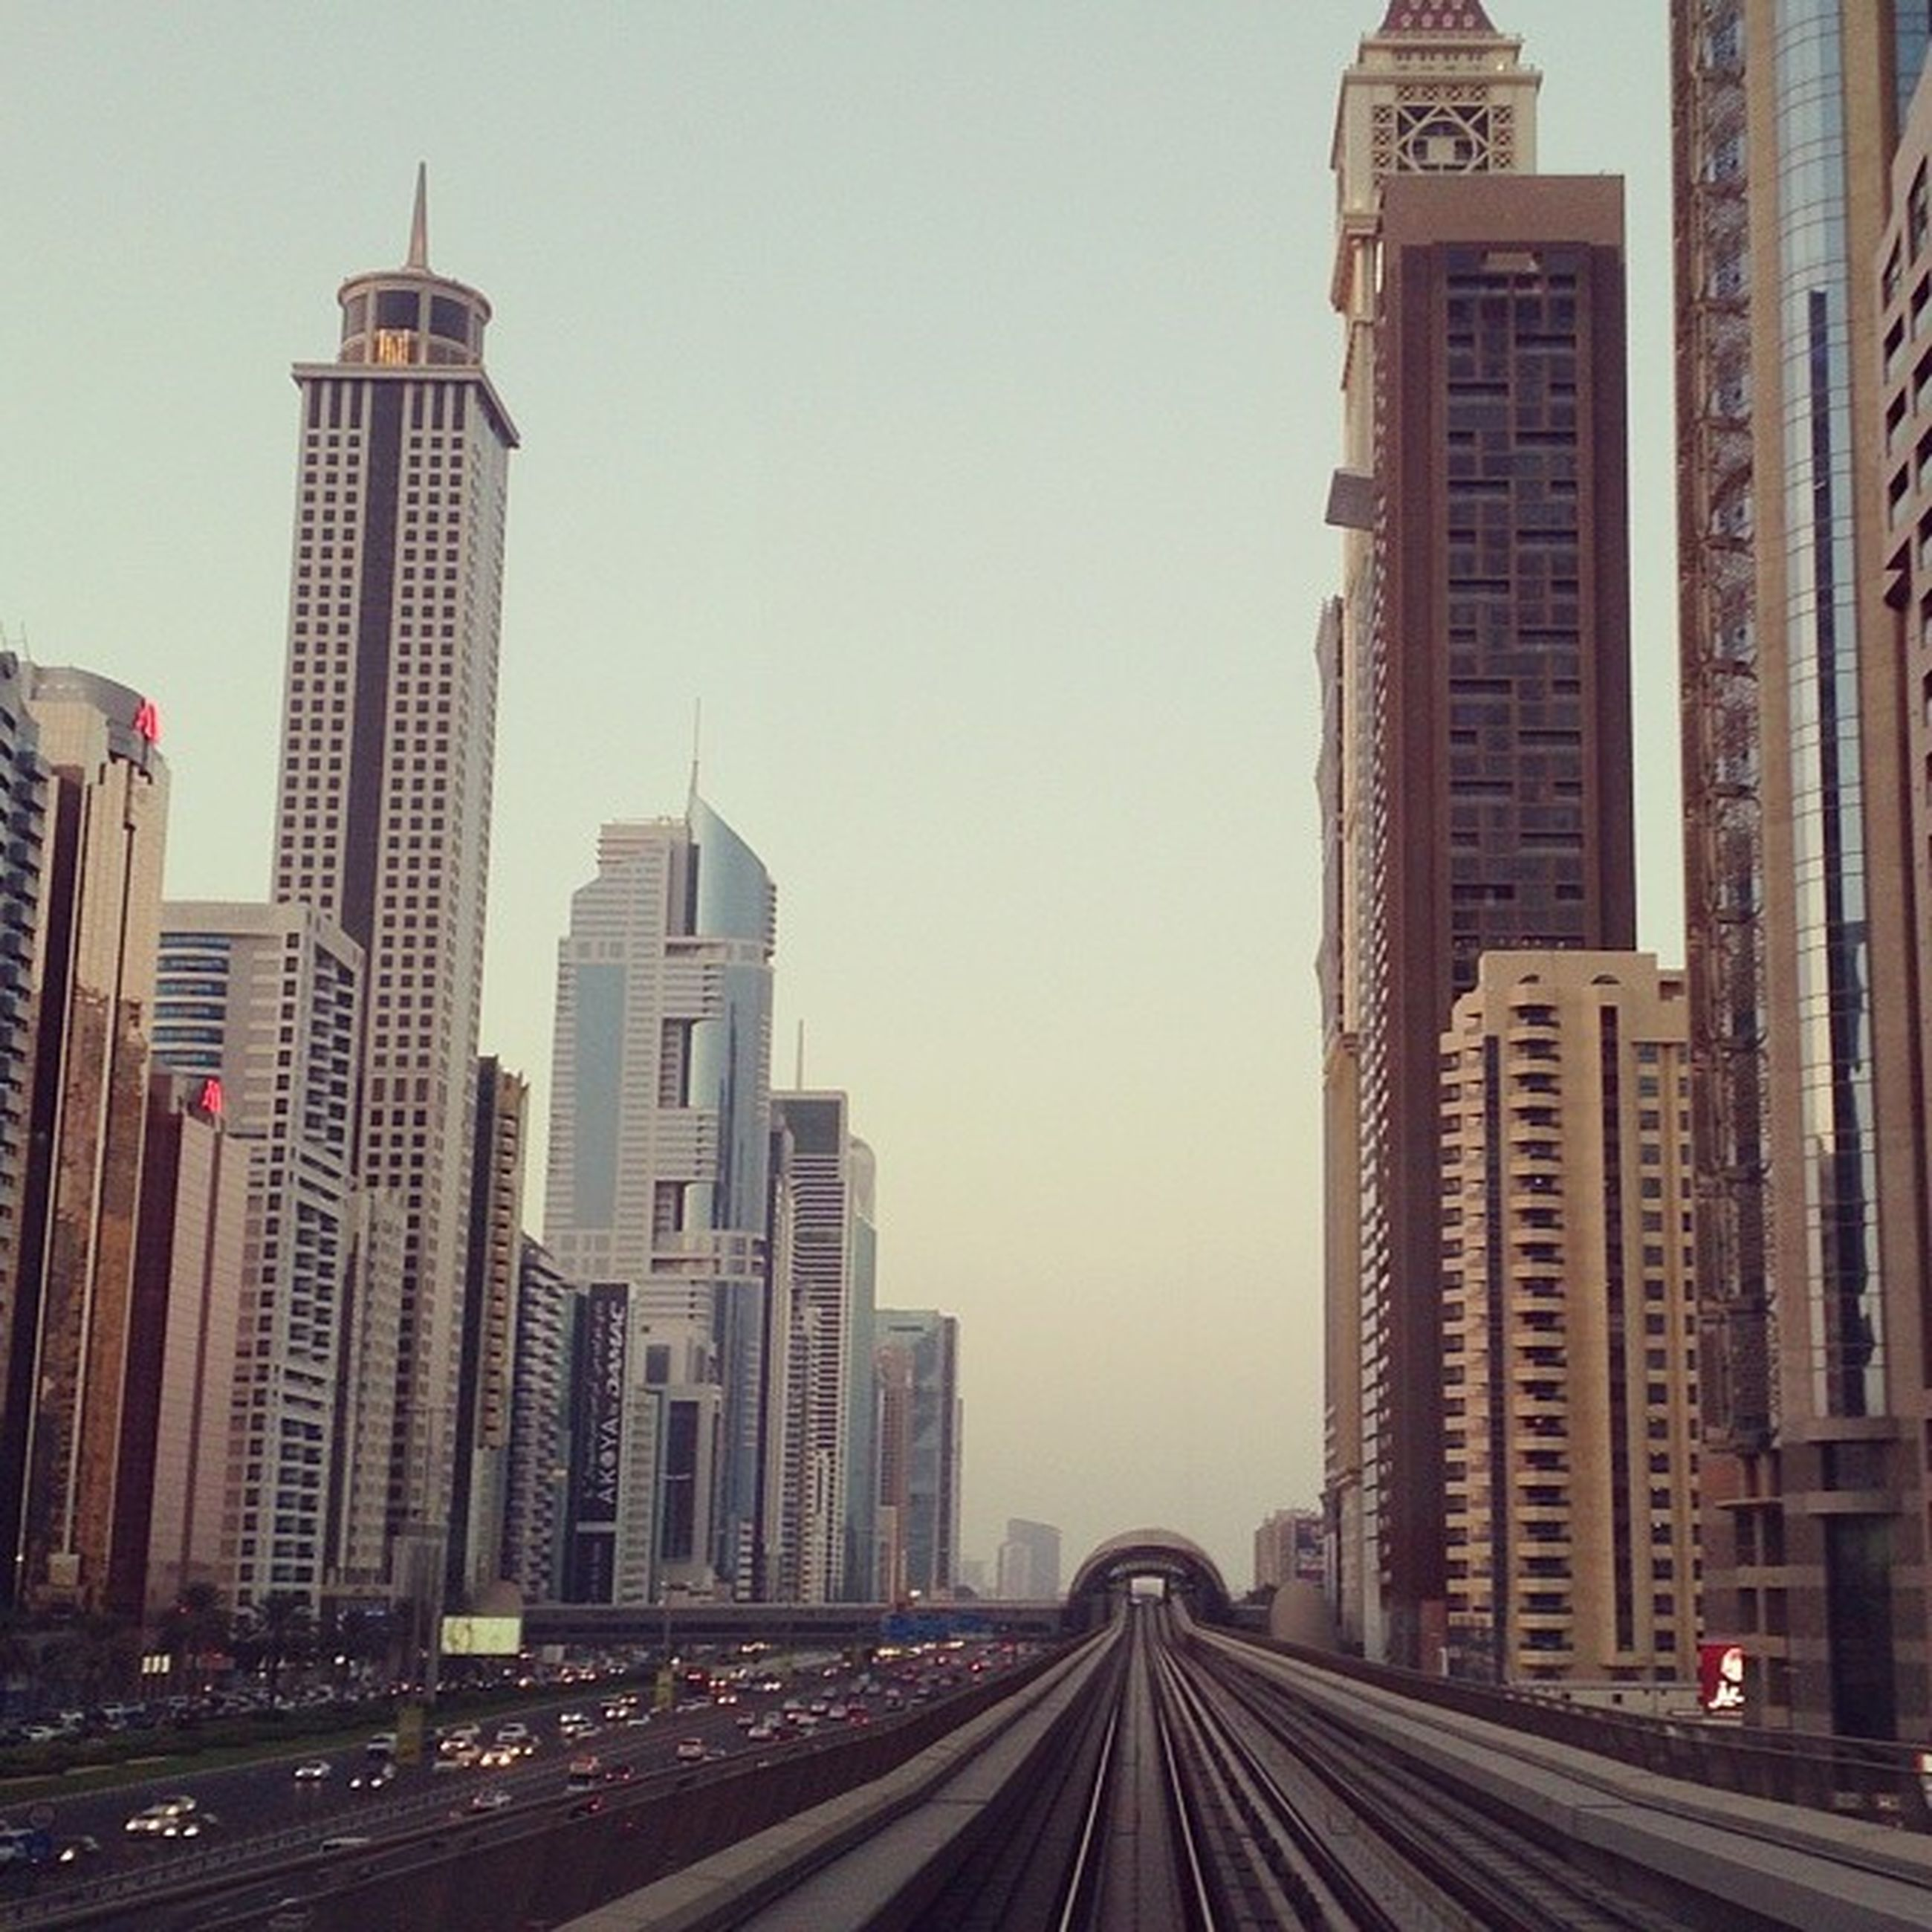 building exterior, architecture, built structure, city, the way forward, skyscraper, transportation, tall - high, tower, diminishing perspective, road, modern, office building, street, cityscape, vanishing point, clear sky, sky, city life, car